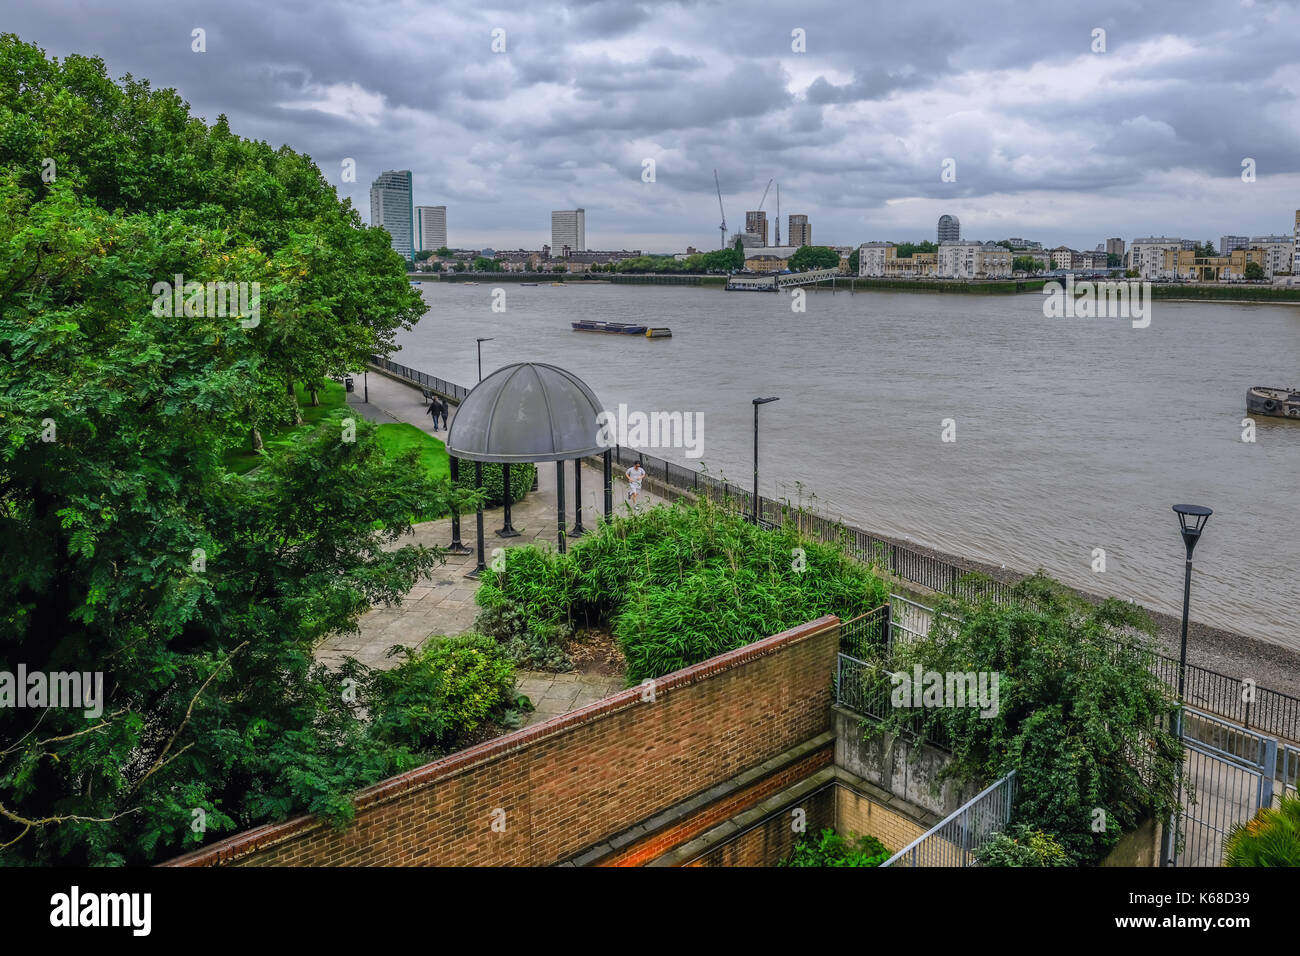 London, UK - August 20, 2017: View of the Mc Dougal Park on the Isle of Dogs. Ariel view looking accross the River Thames. - Stock Image